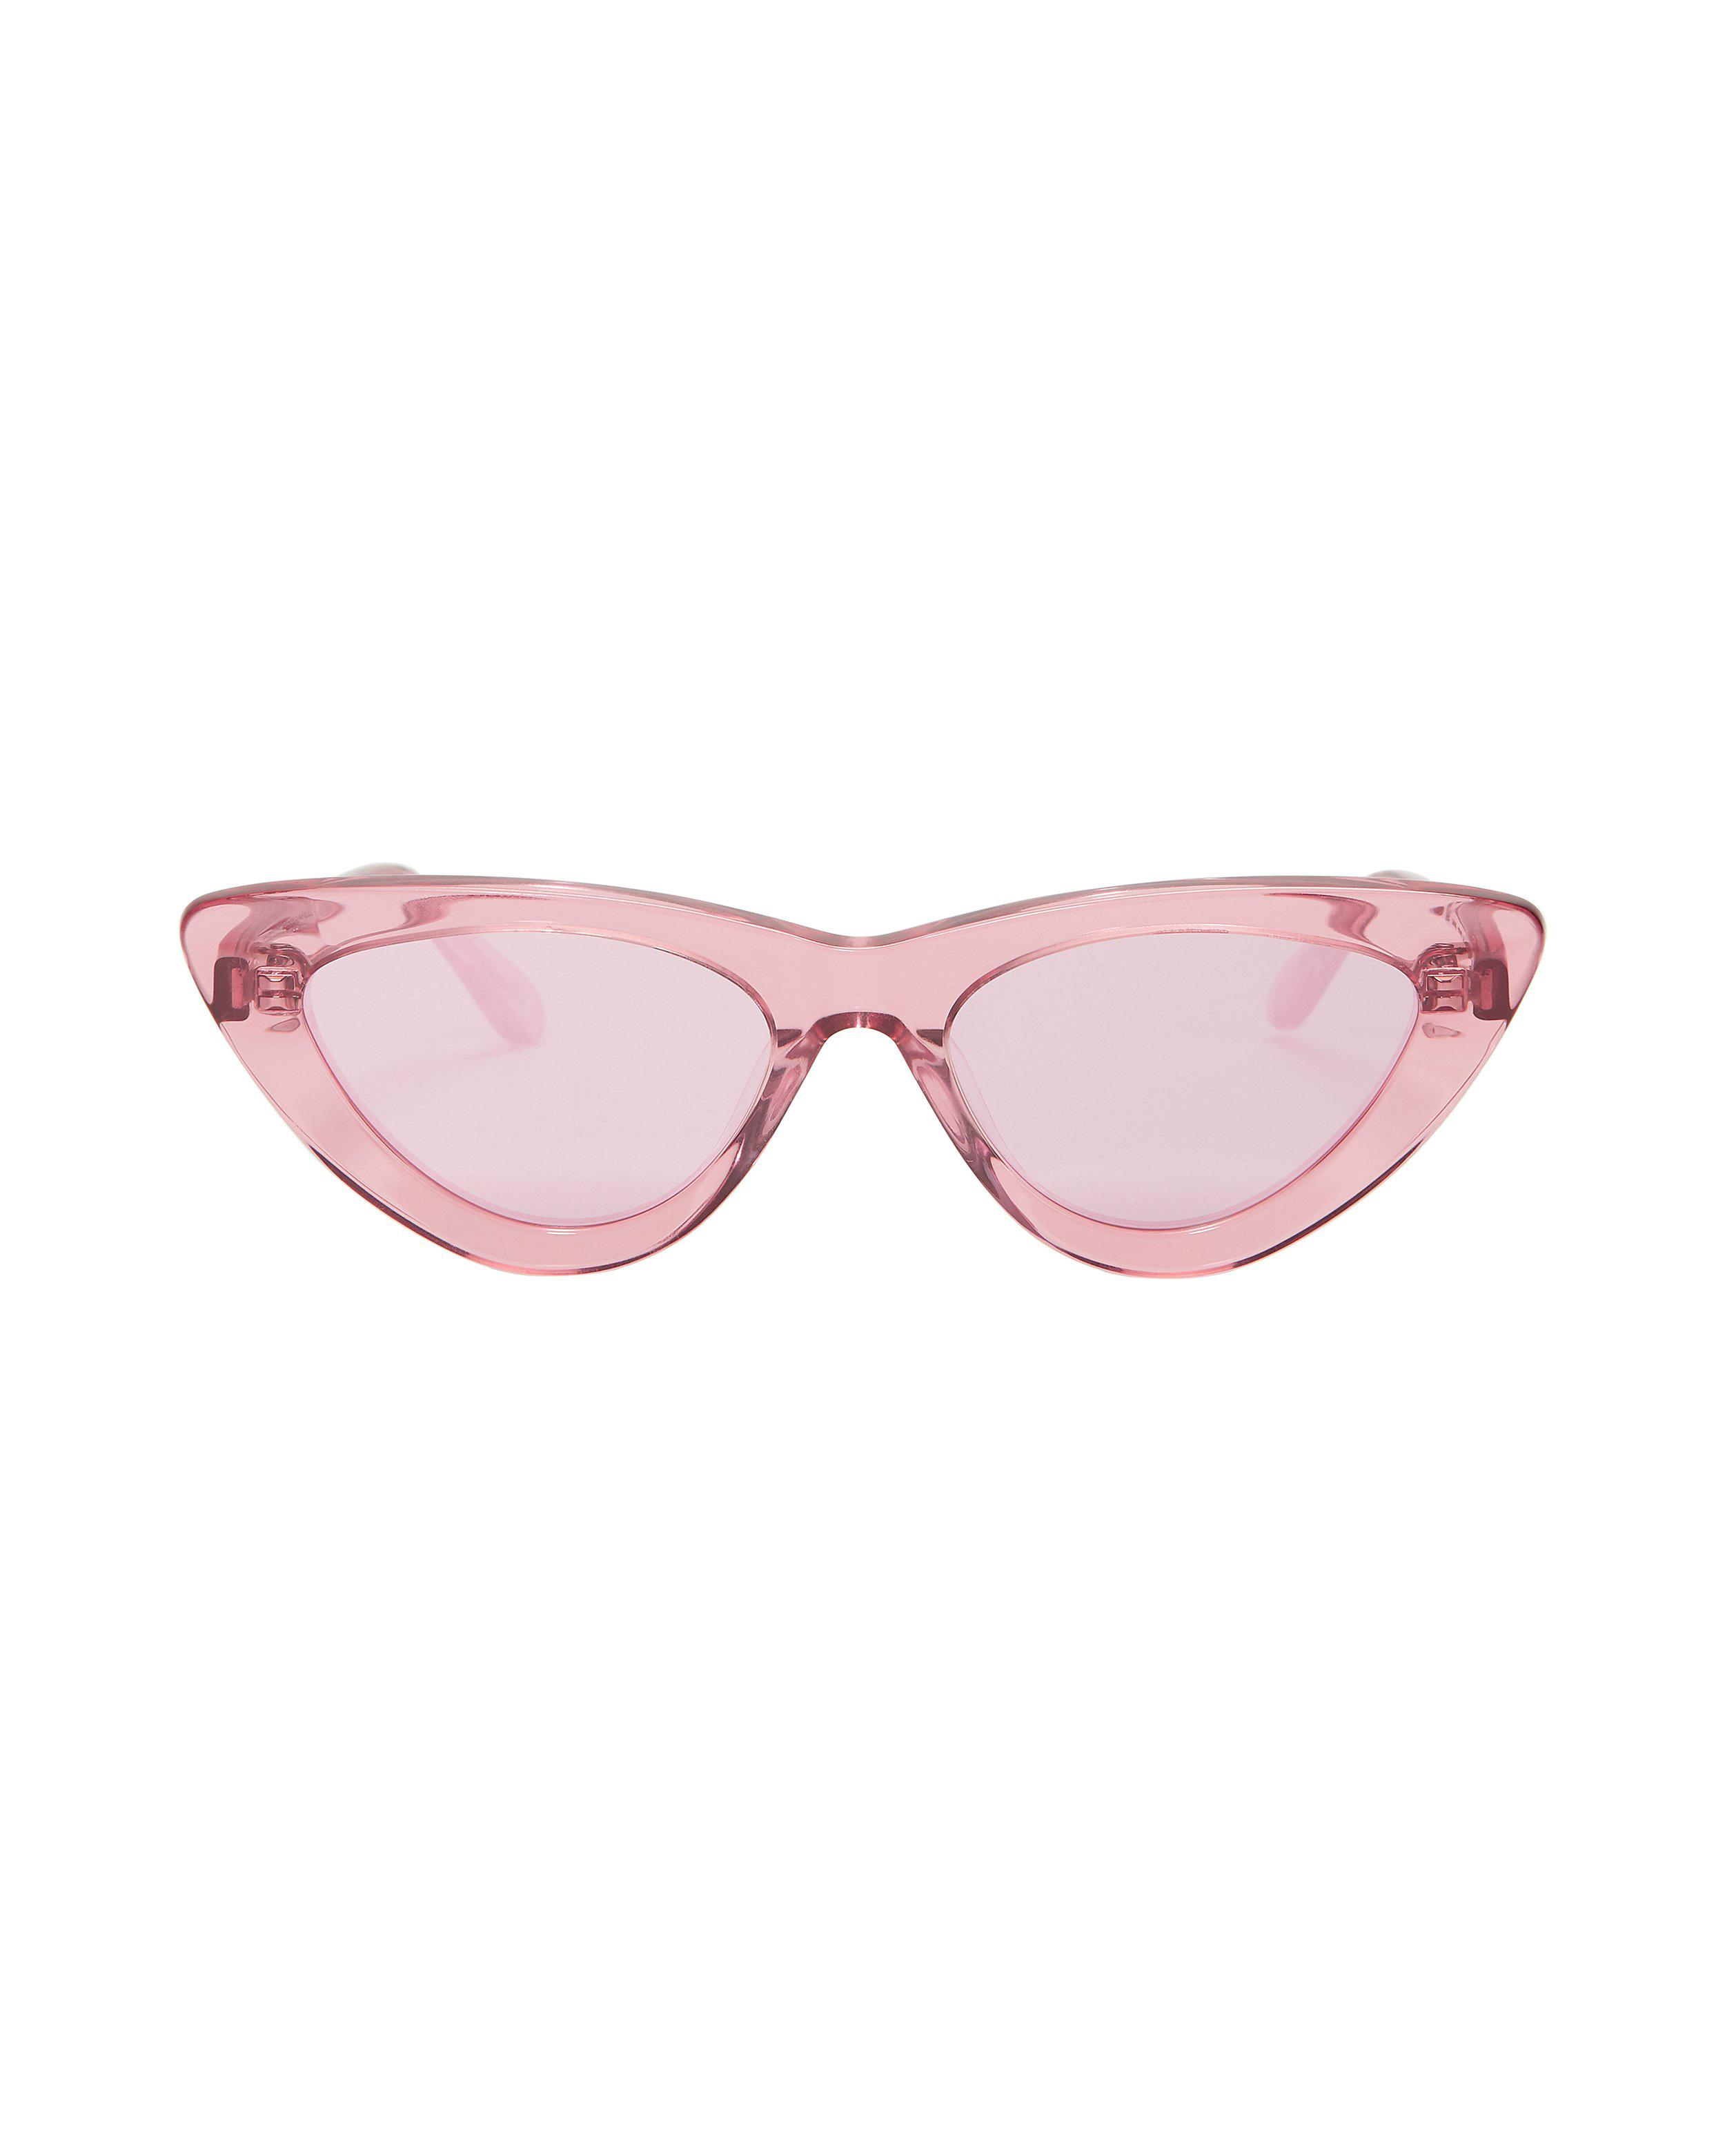 490df1eb29 Chimi Pink Cat Eye Sunglasses in Pink - Lyst